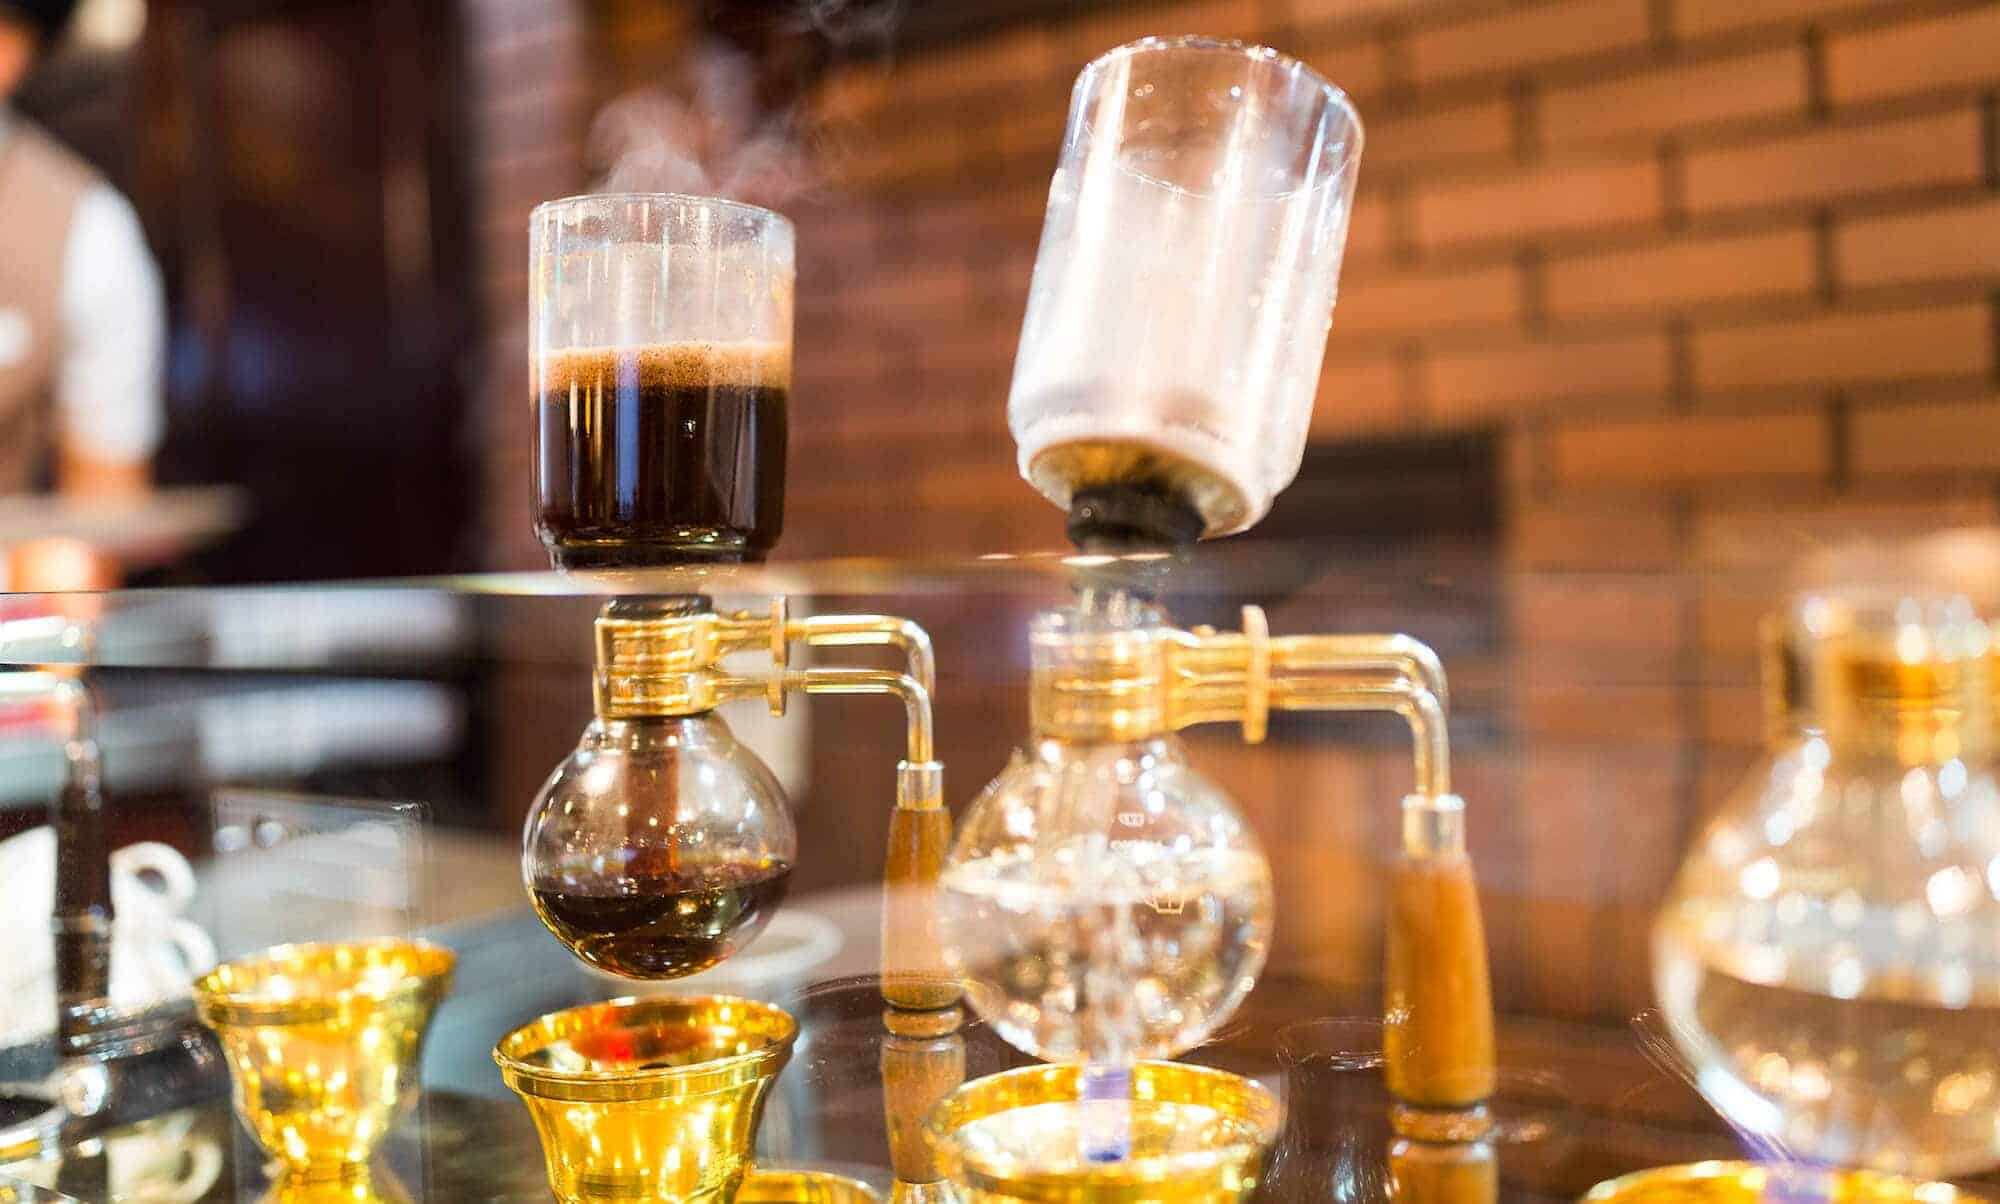 Siphon Coffee Maker Best For Hario Syphon Nouveau Nca 3 Top 5 Makers Aka Vacuum Pot